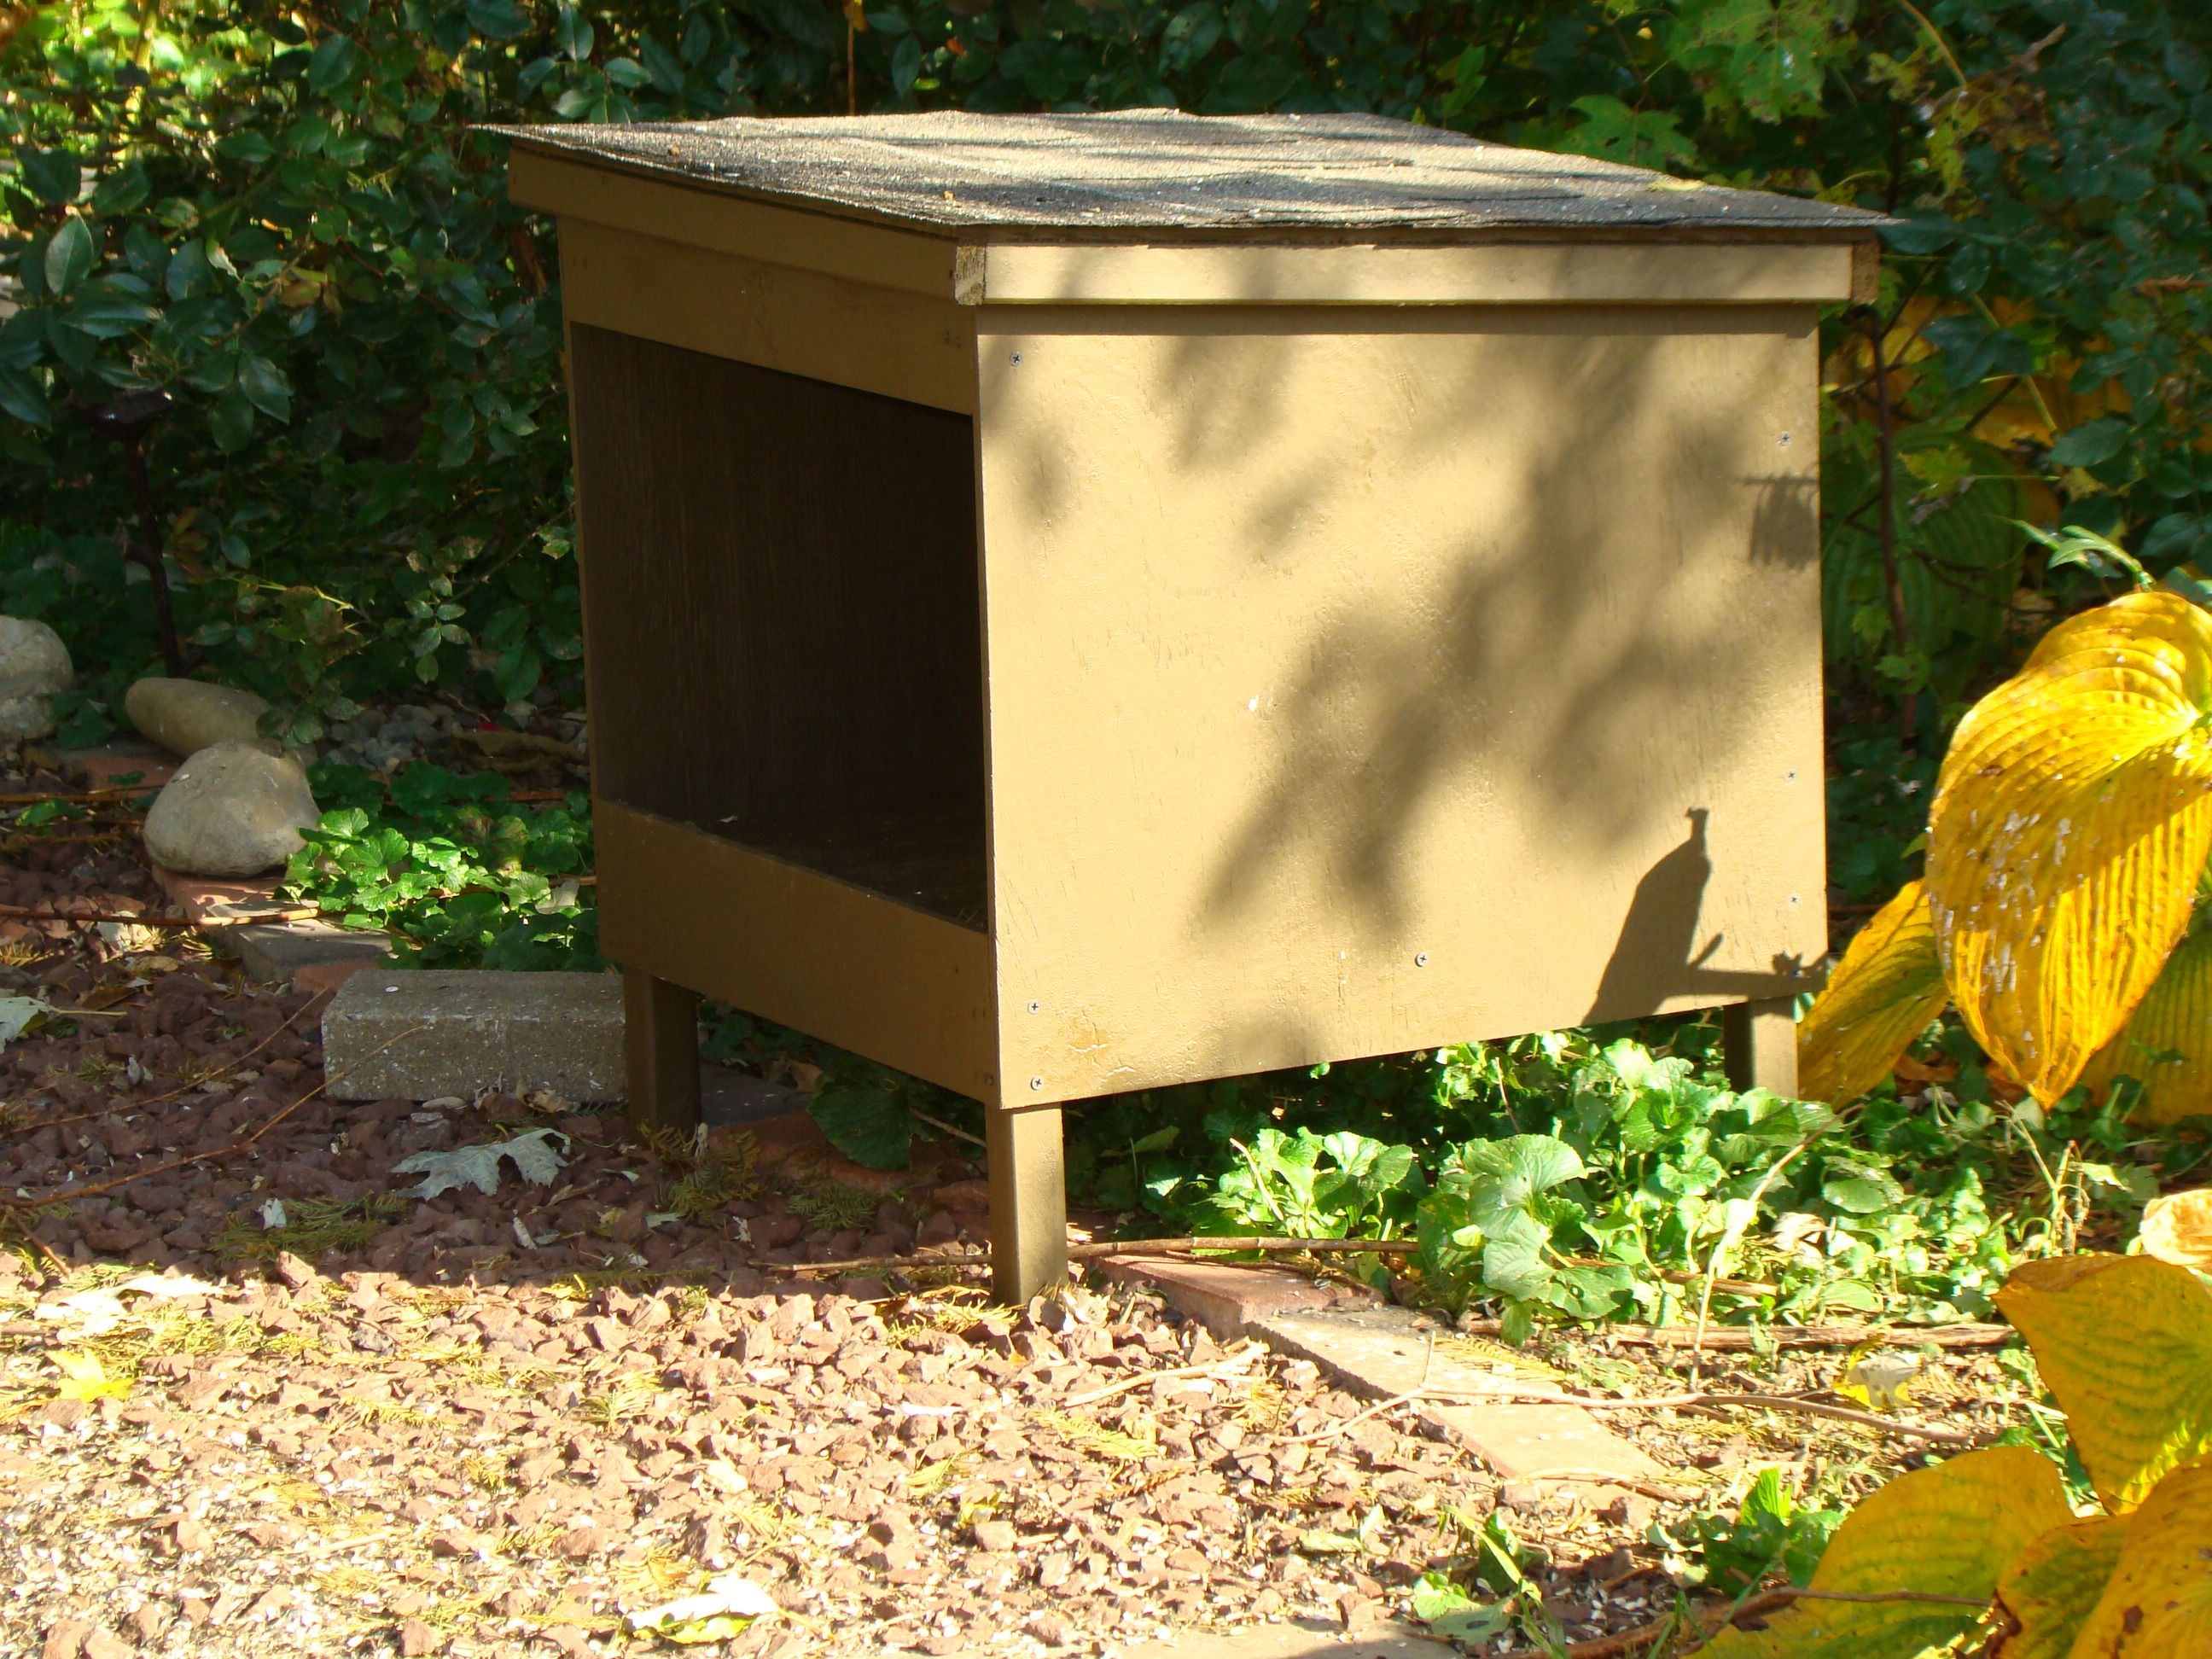 Feeding Station For Feral Cats Feral Cats Cat Food Station Feral Cat House